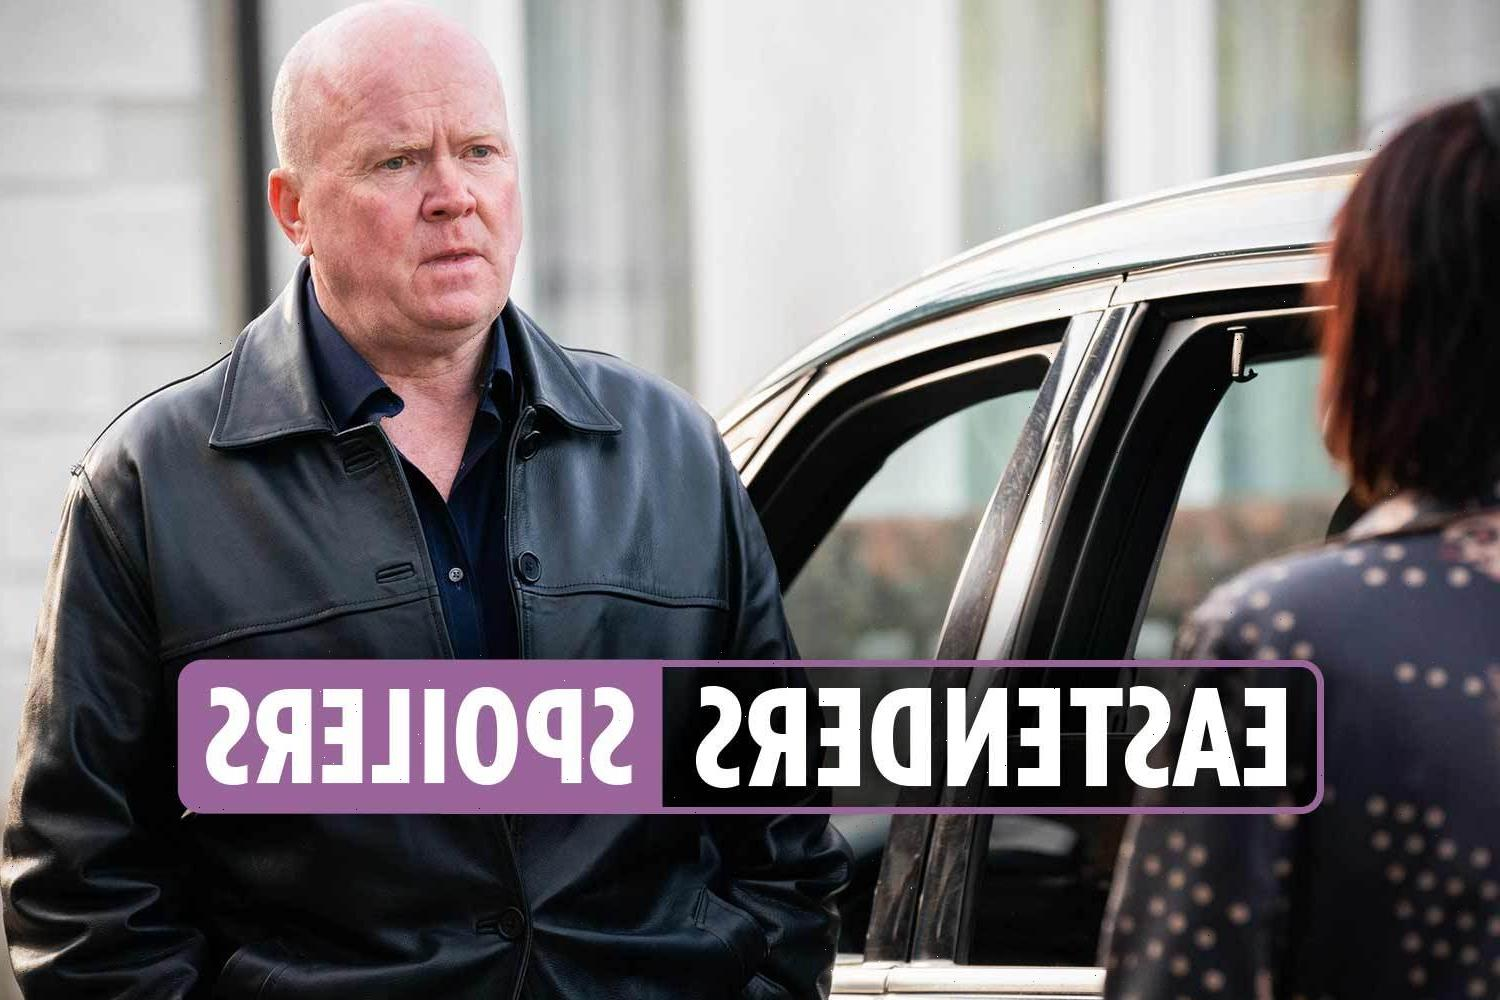 EastEnders spoilers: Ben Mitchell lashes out at dad Phil as things thaw between them